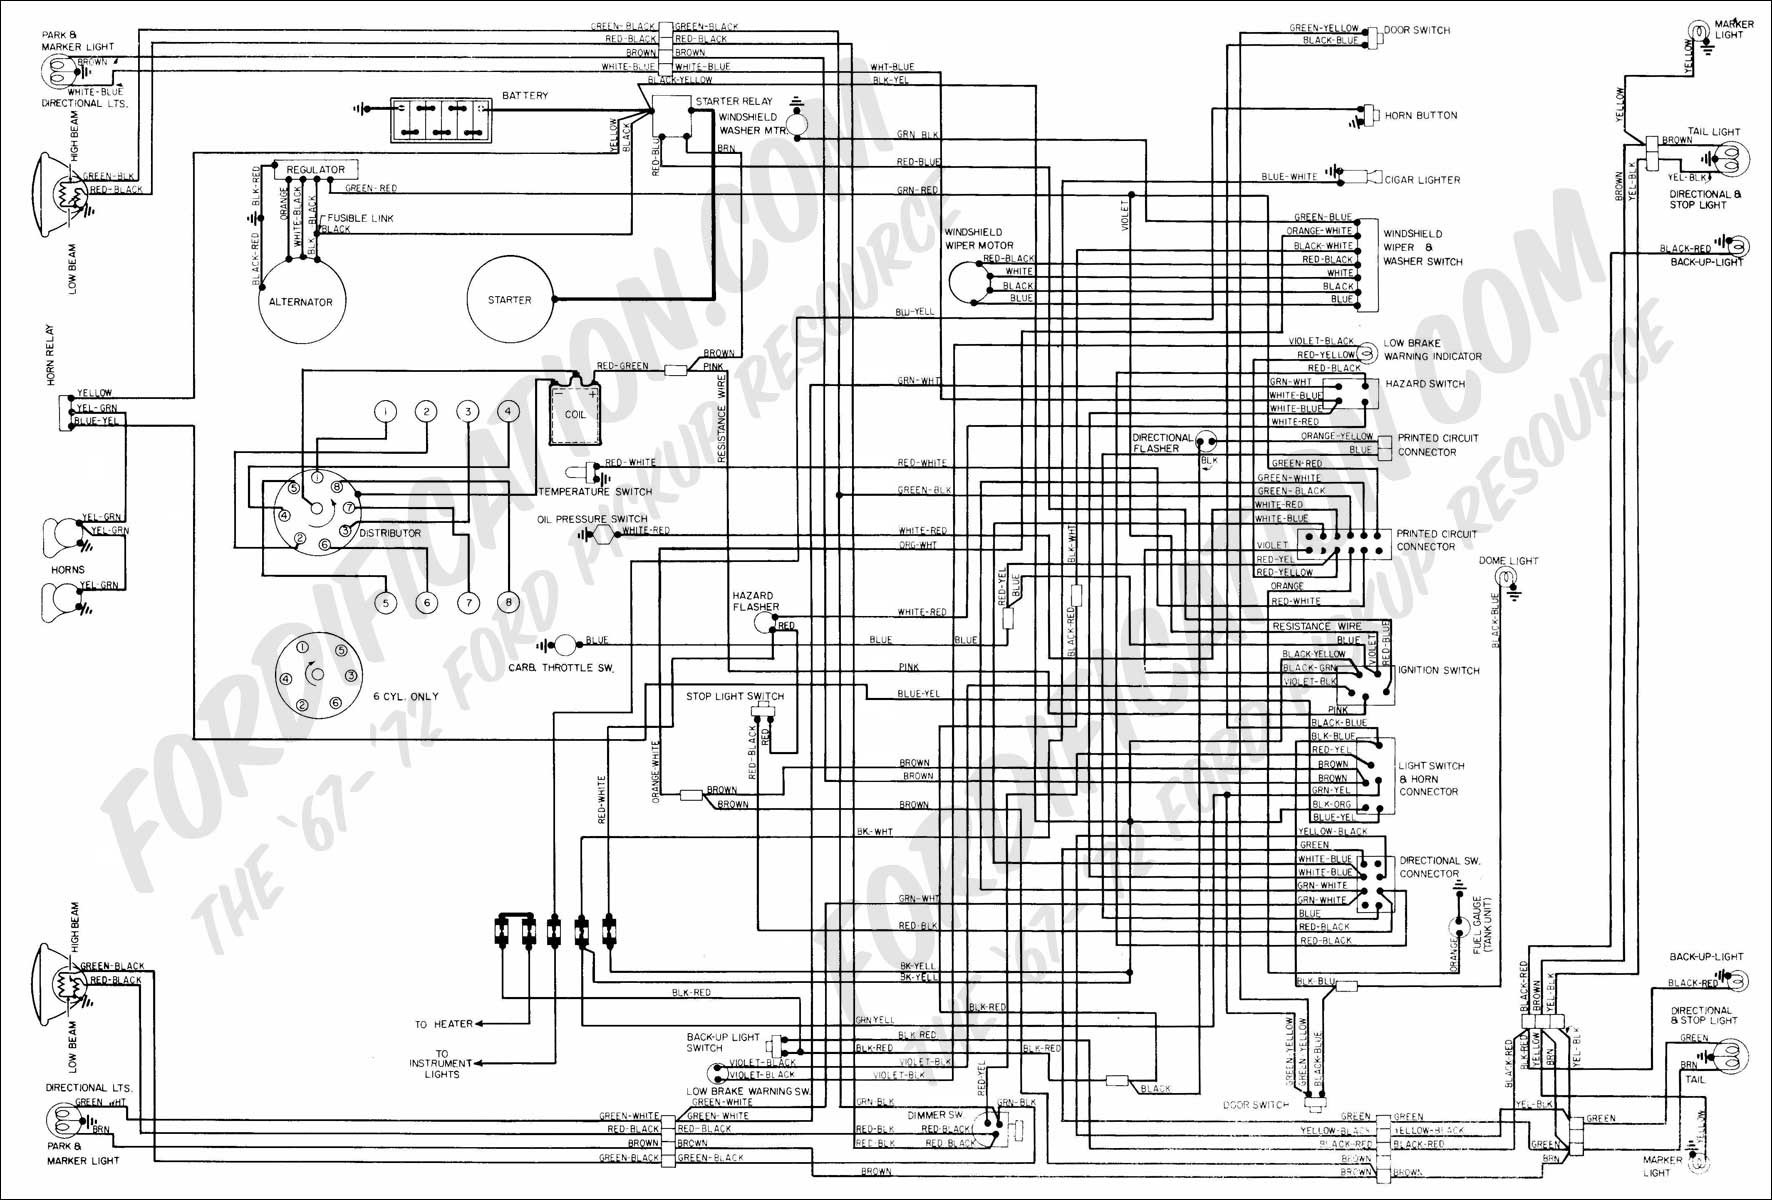 1998 Ford Windstar Fuse Panel Diagram Wiring Library Box For 2003 F150 4 2 V6